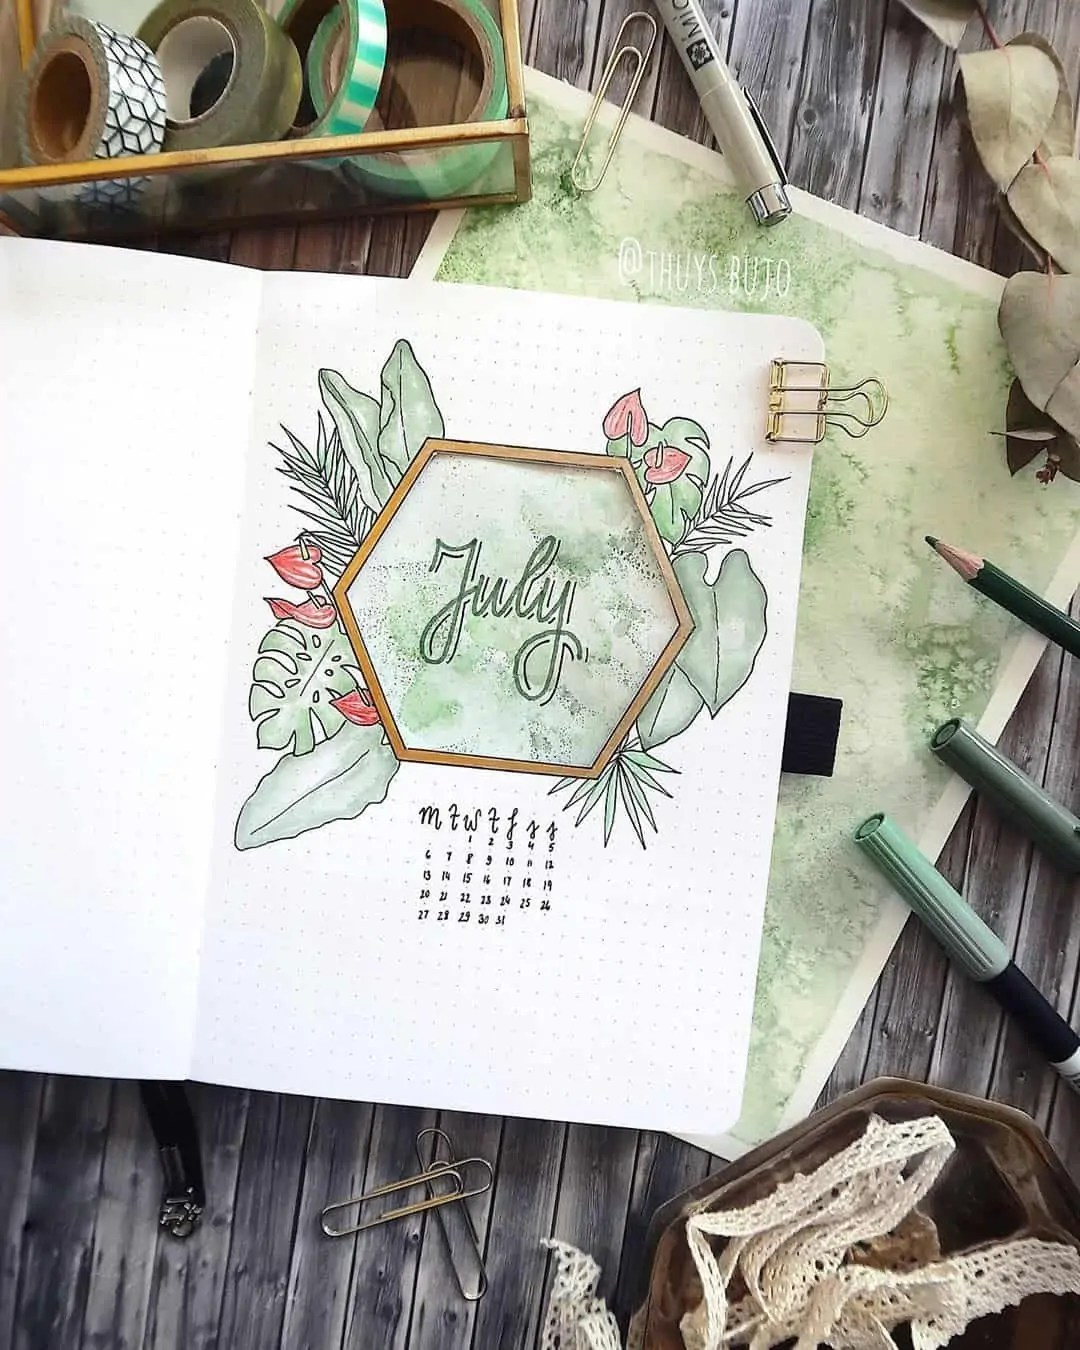 100+ Bullet Journal Ideas that you have to see and copy today! 278